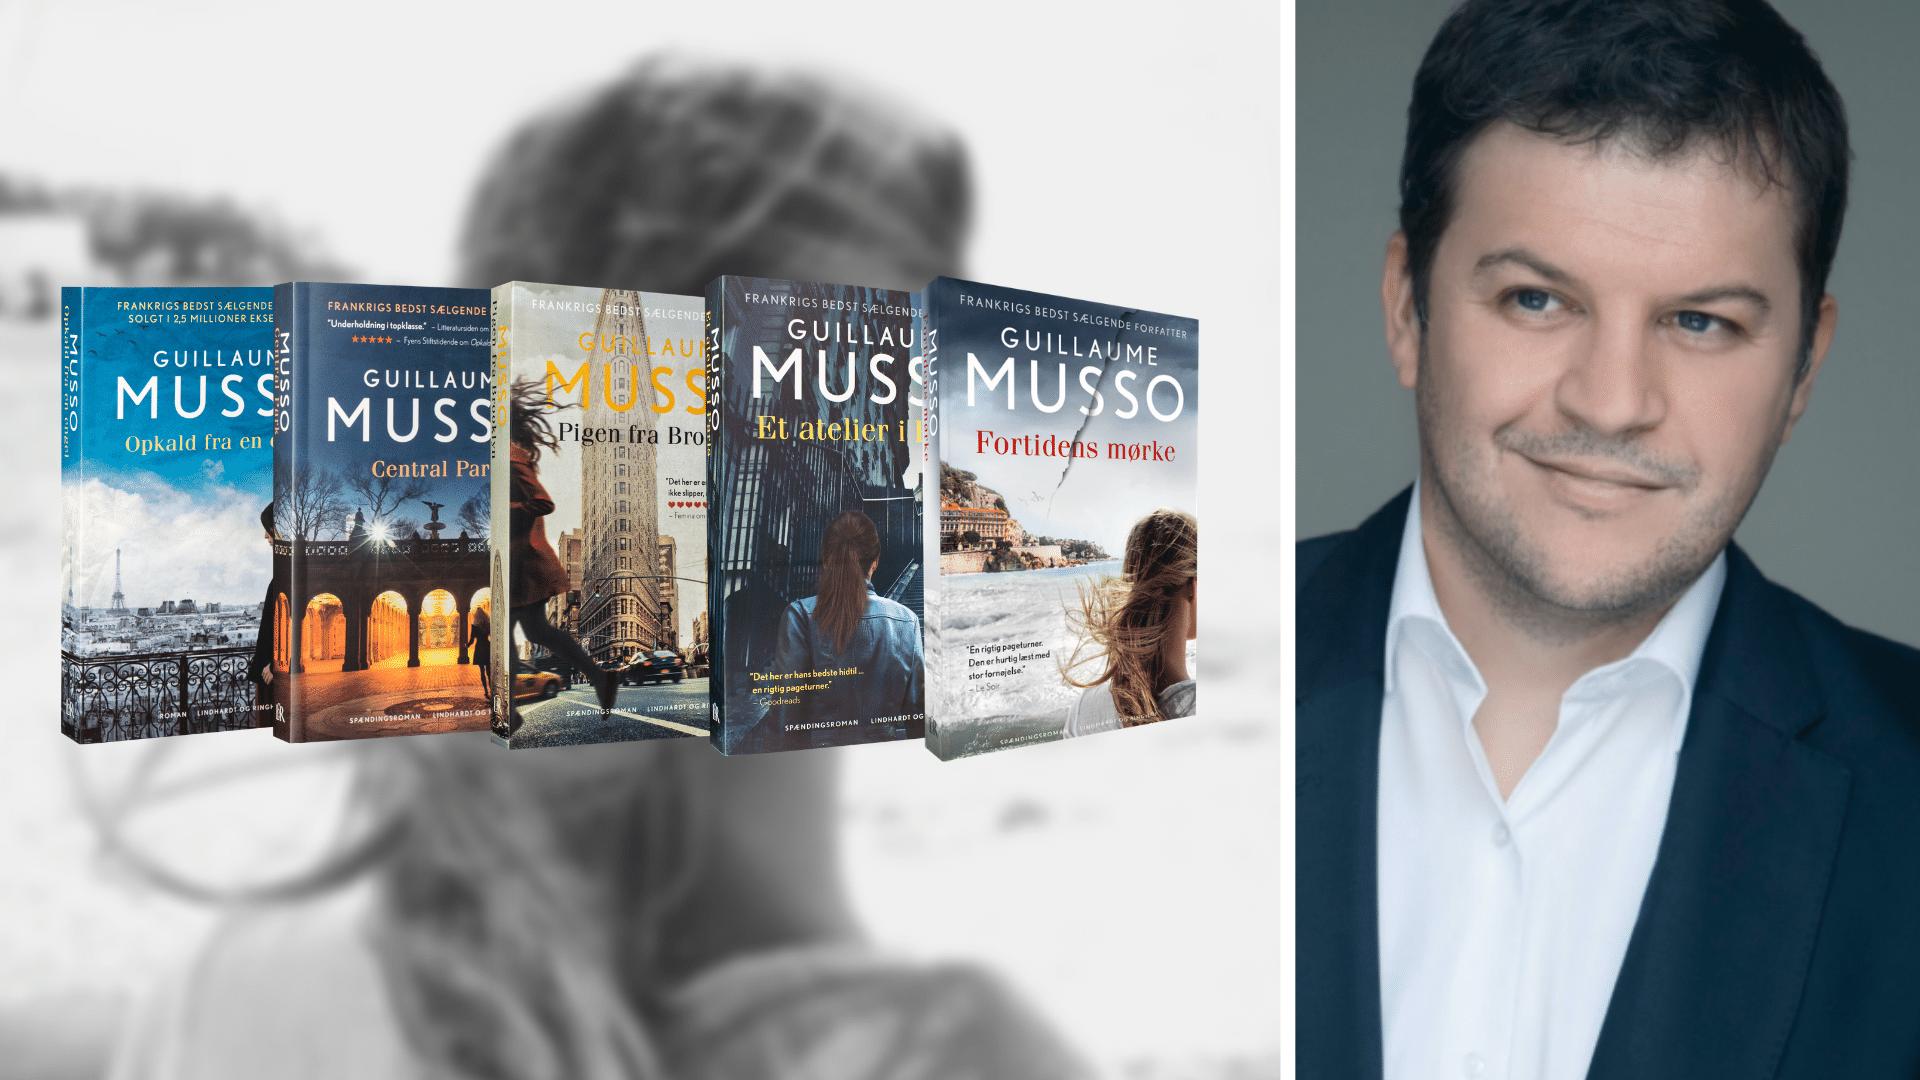 Musso, Guillaume Musso, Krimi